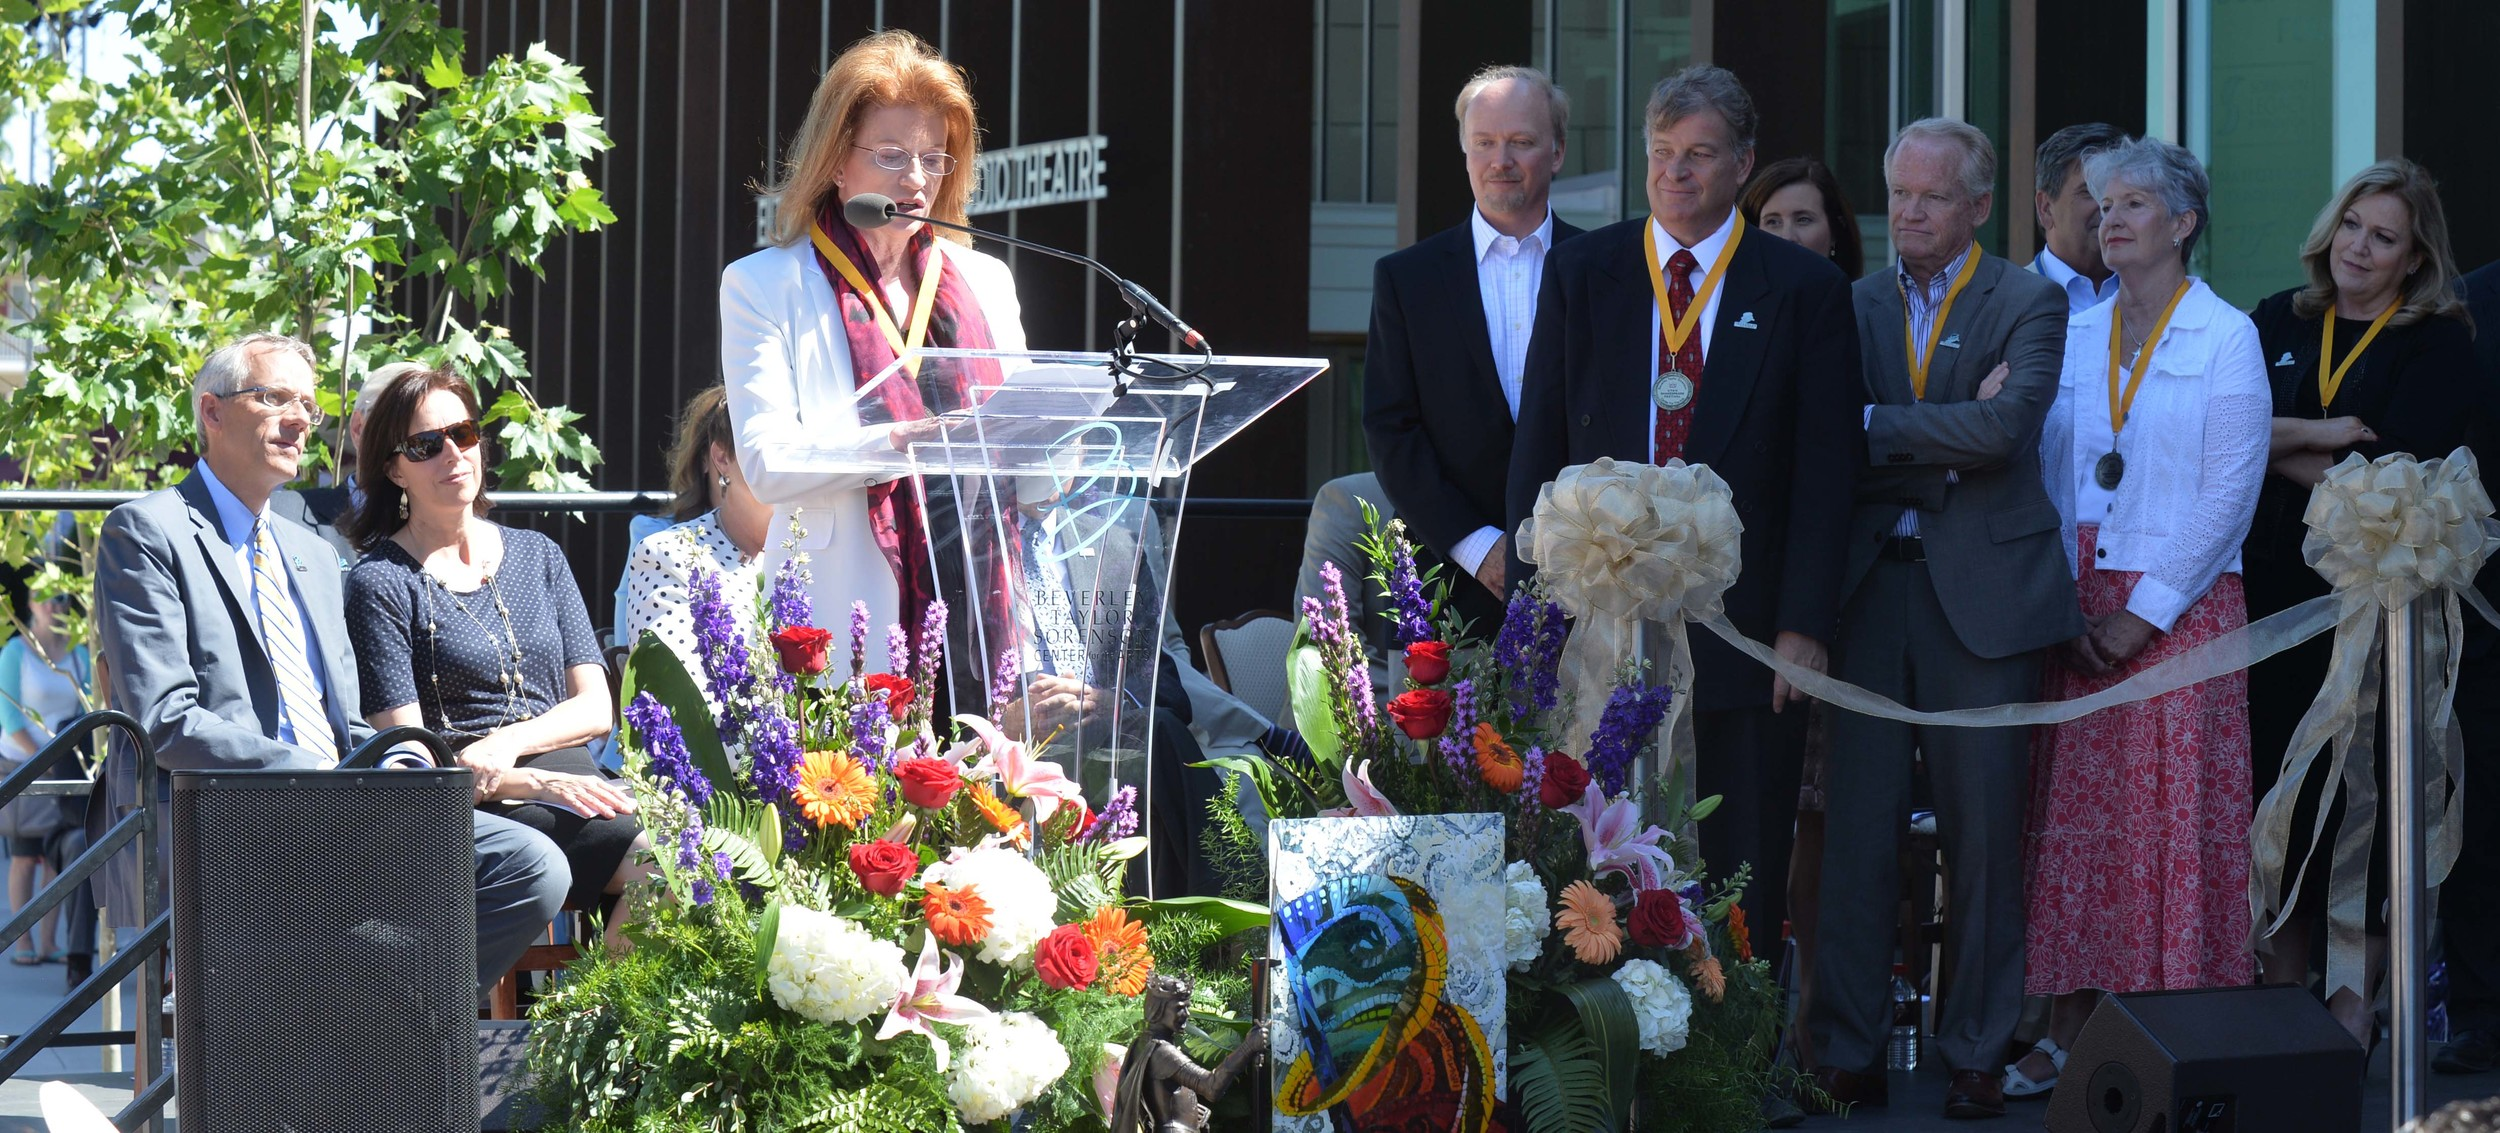 Ann Crocker, representing the Sorenson family and the Sorenson Legacy Foundation, addresses the crowd as members of the Sorenson family look on at the dedication of the Beverley Taylor Sorenson Center for the Arts.